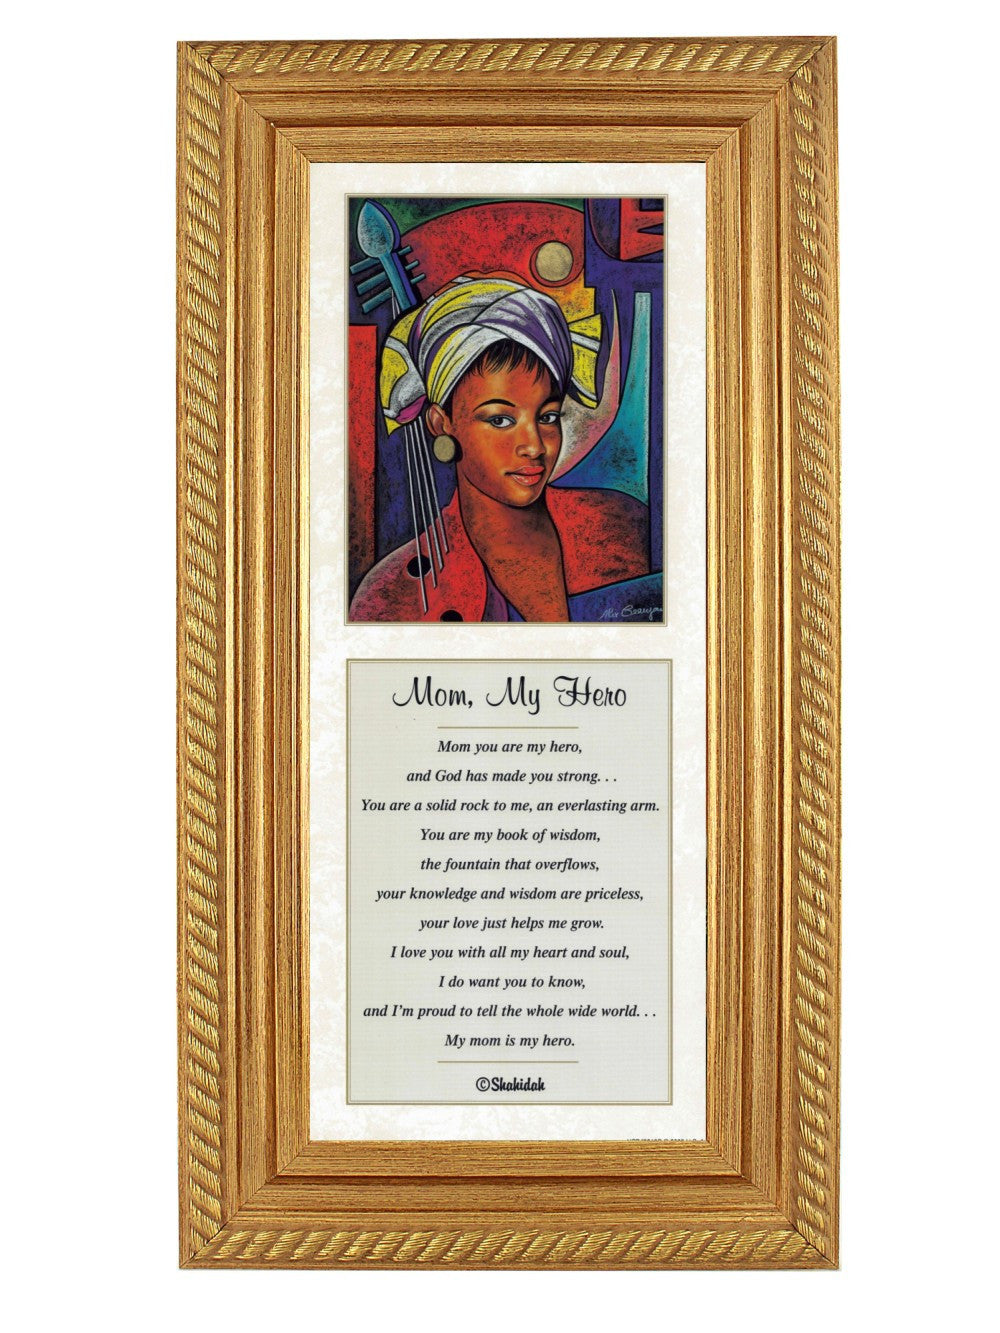 Mom, My Hero by Alix Beajour and Shahidah (Gold Rope Frame)